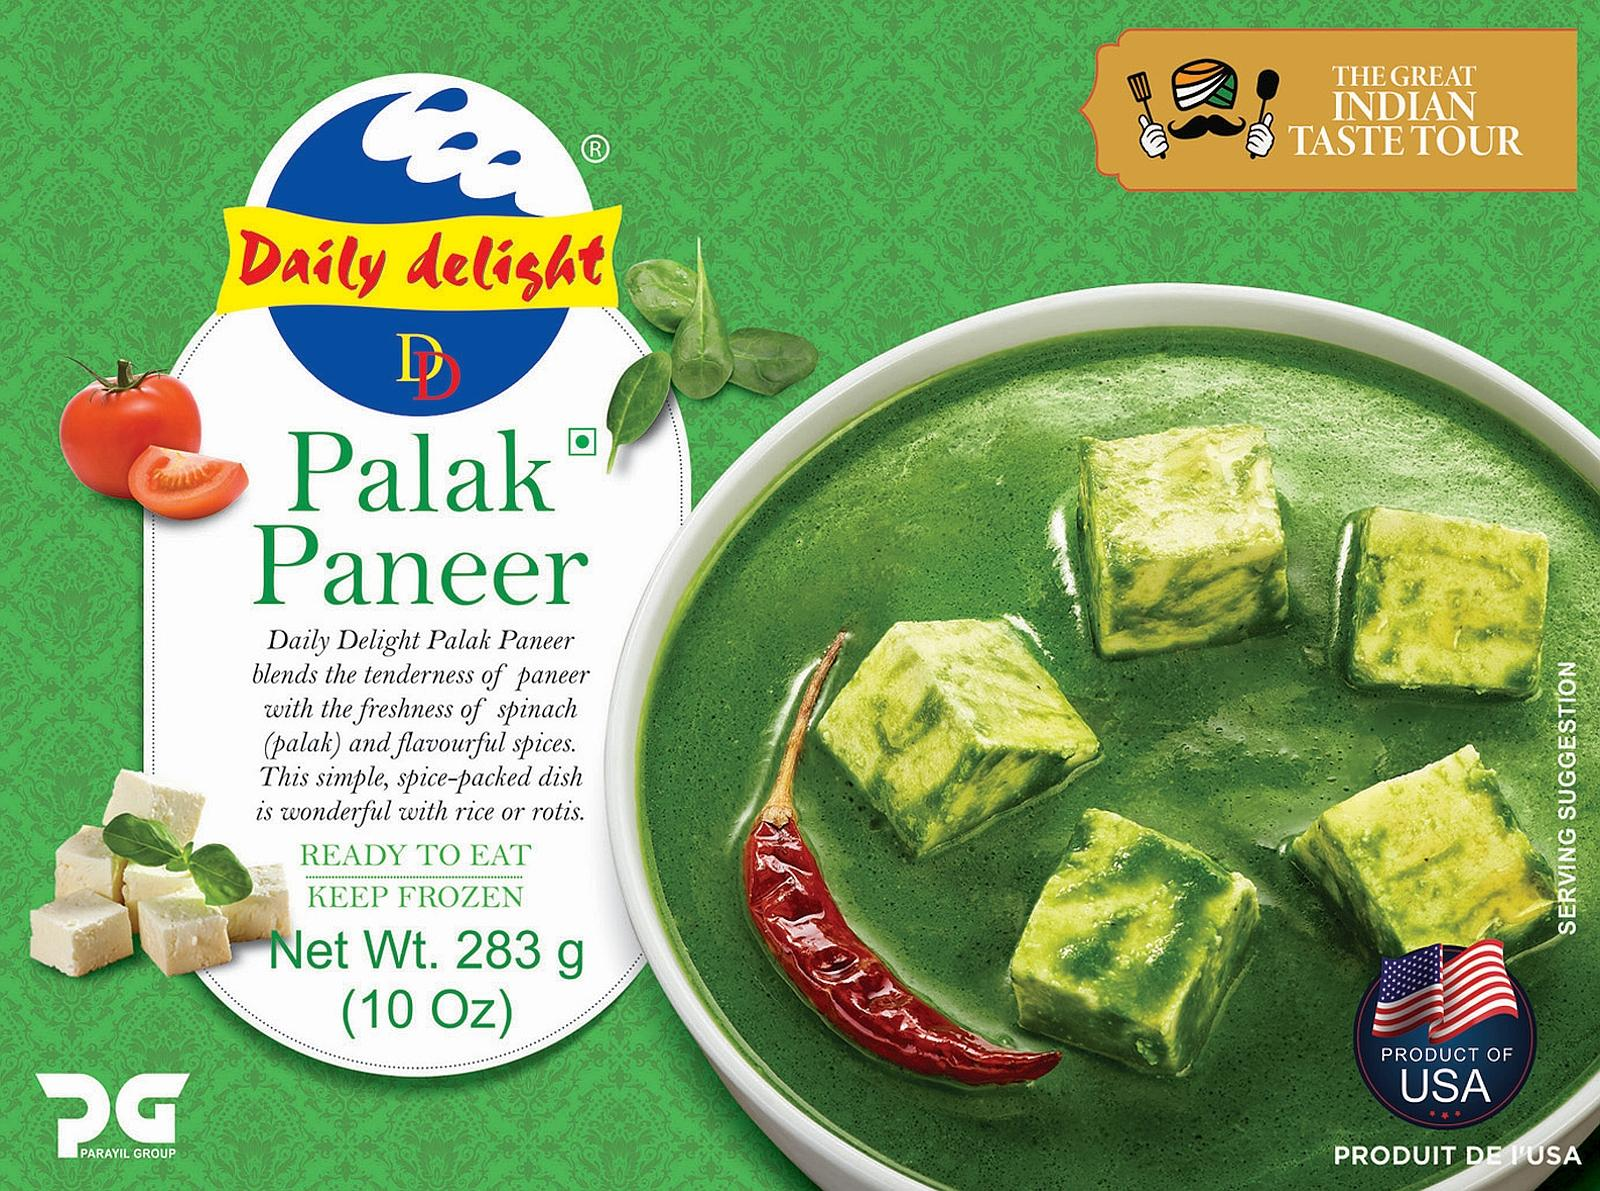 Daily Delight Palak Paneer